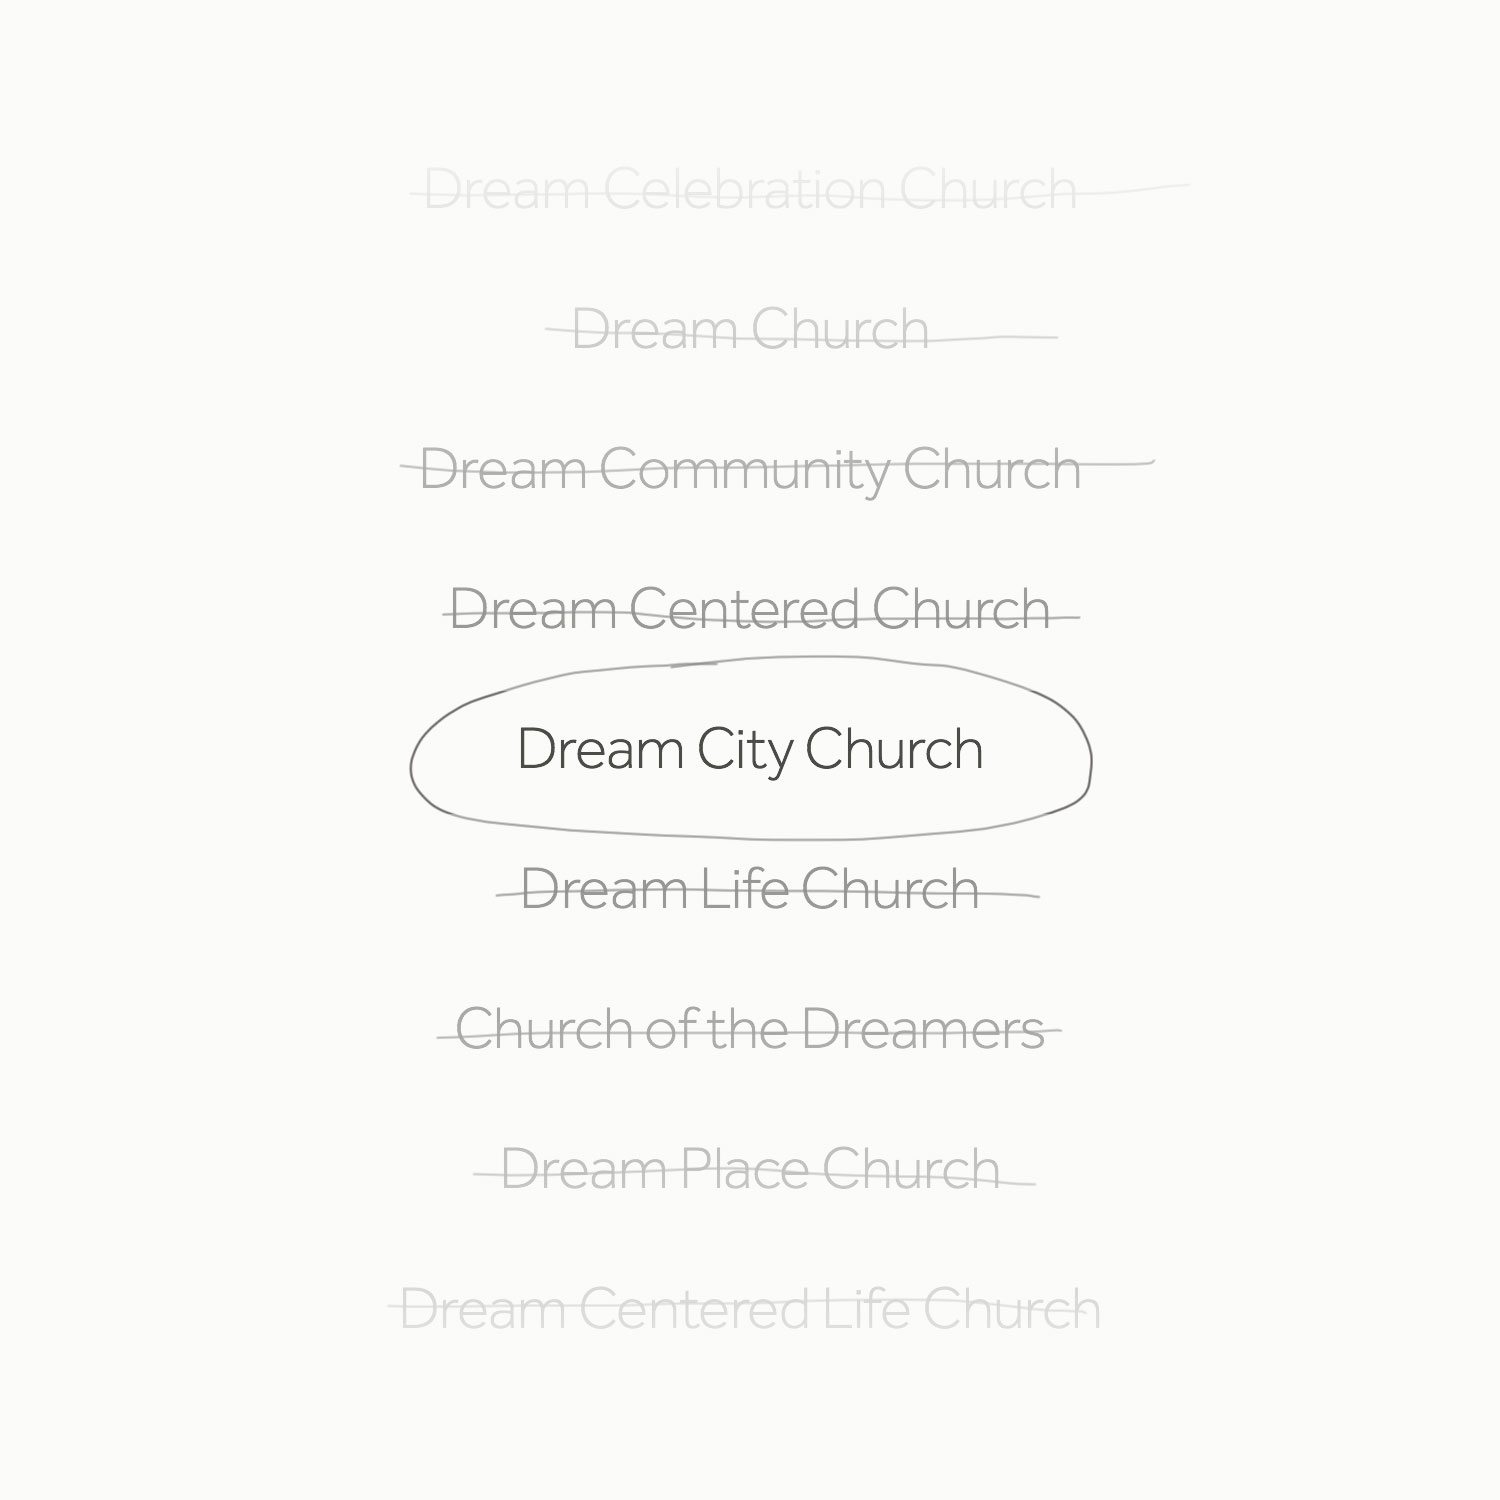 In the early stages of the project, HellothisisJeff helped church leaders decide on the new name by creating a matrix that presented all options with pros and cons for each.